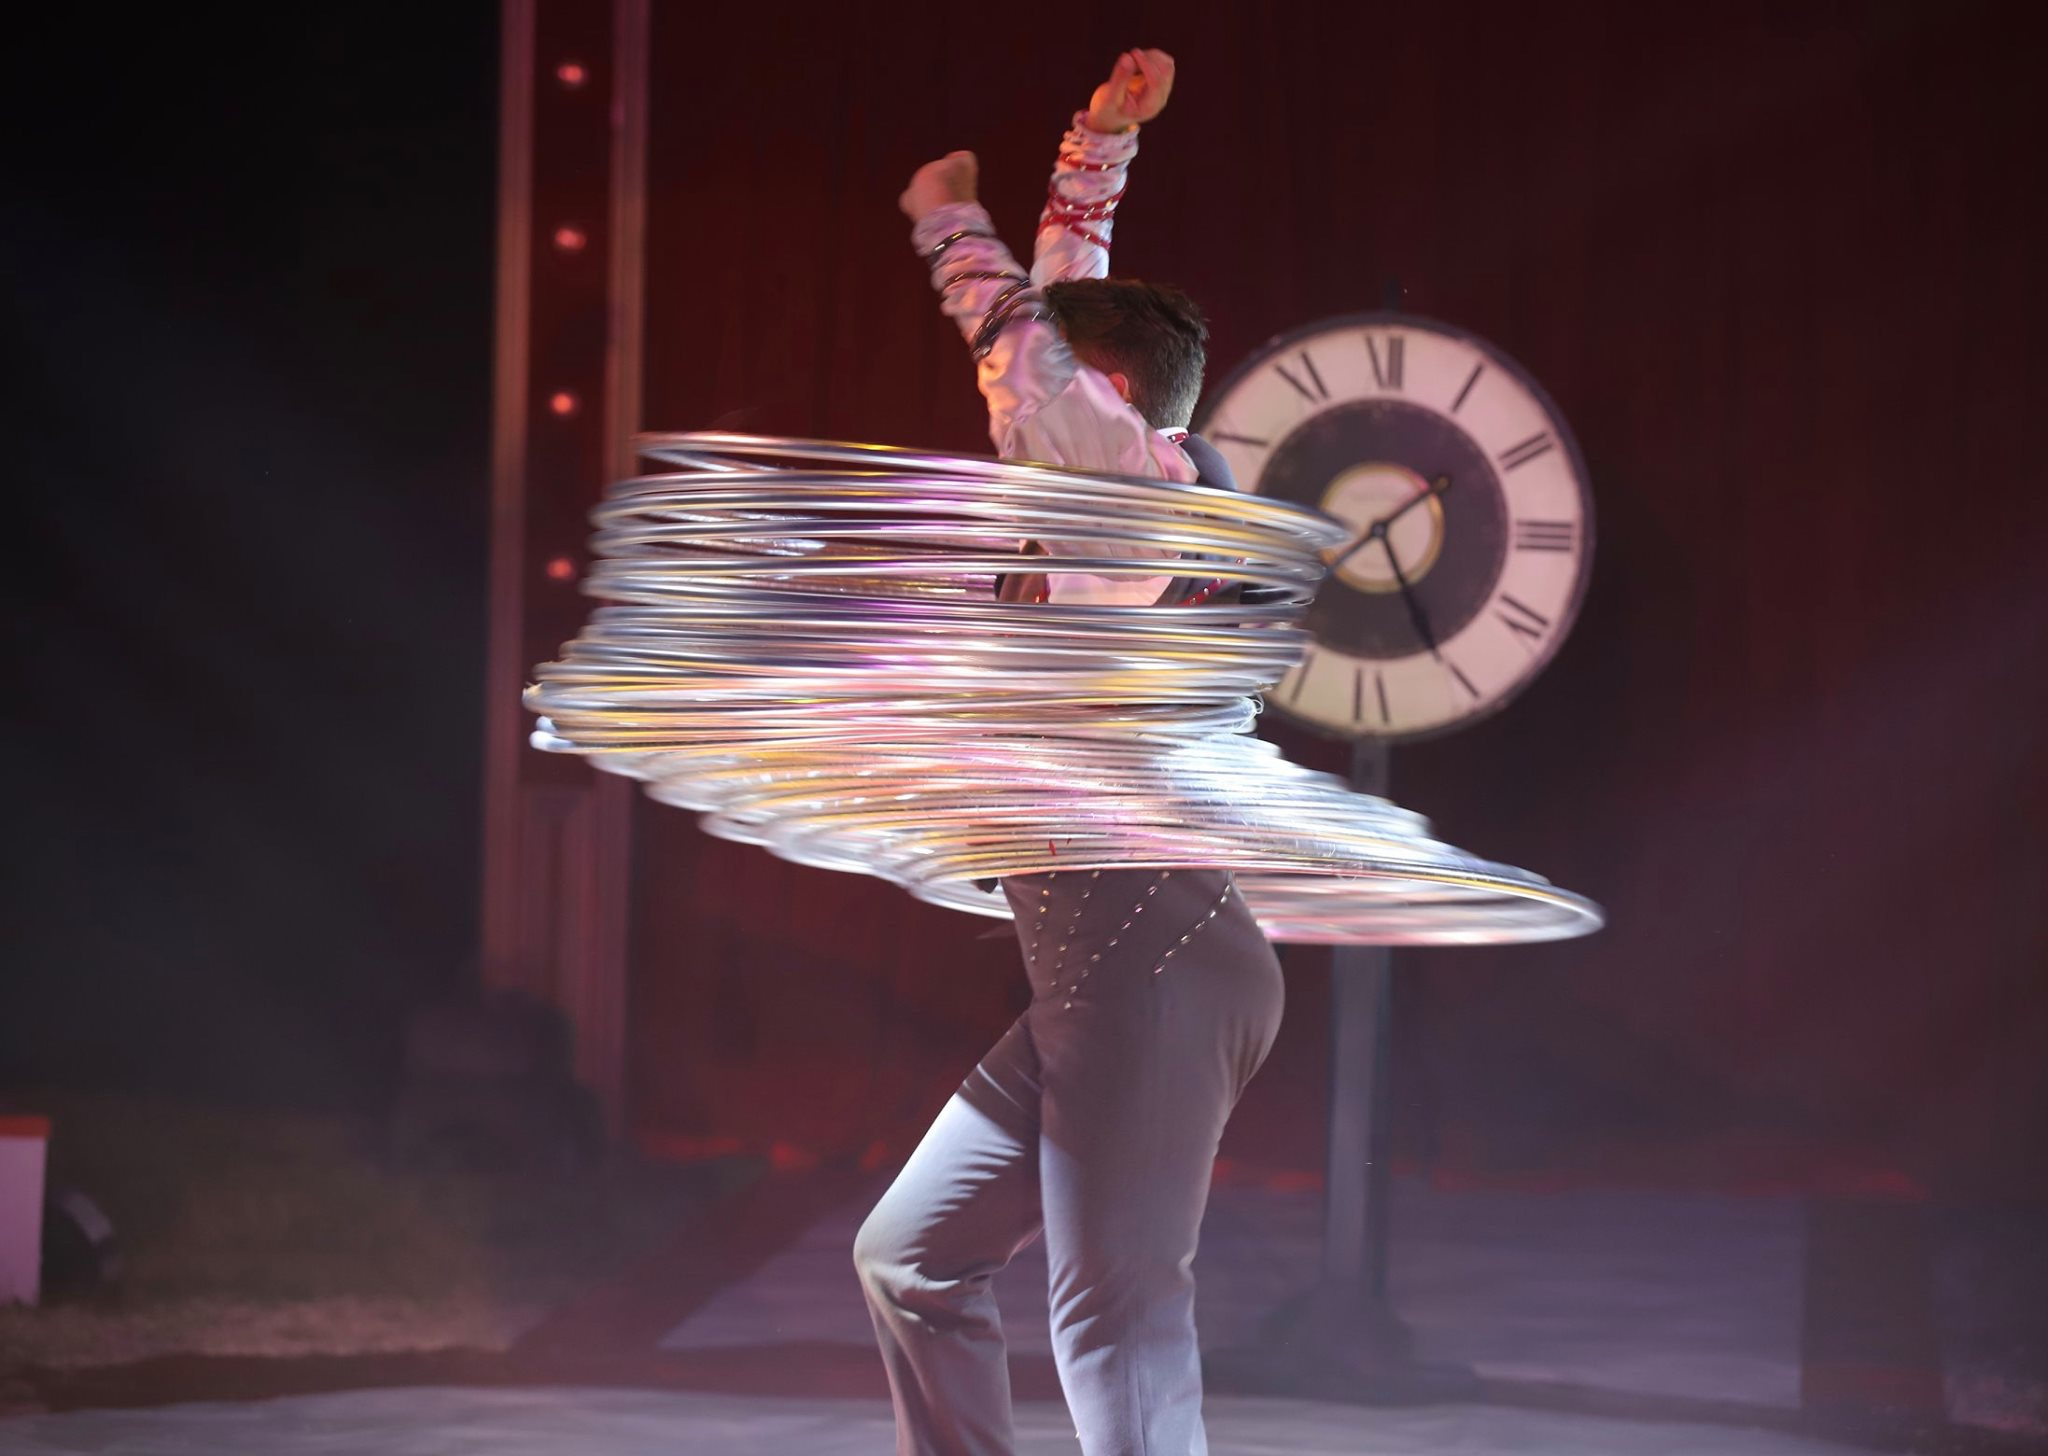 Book this circus artist in The Netherlands